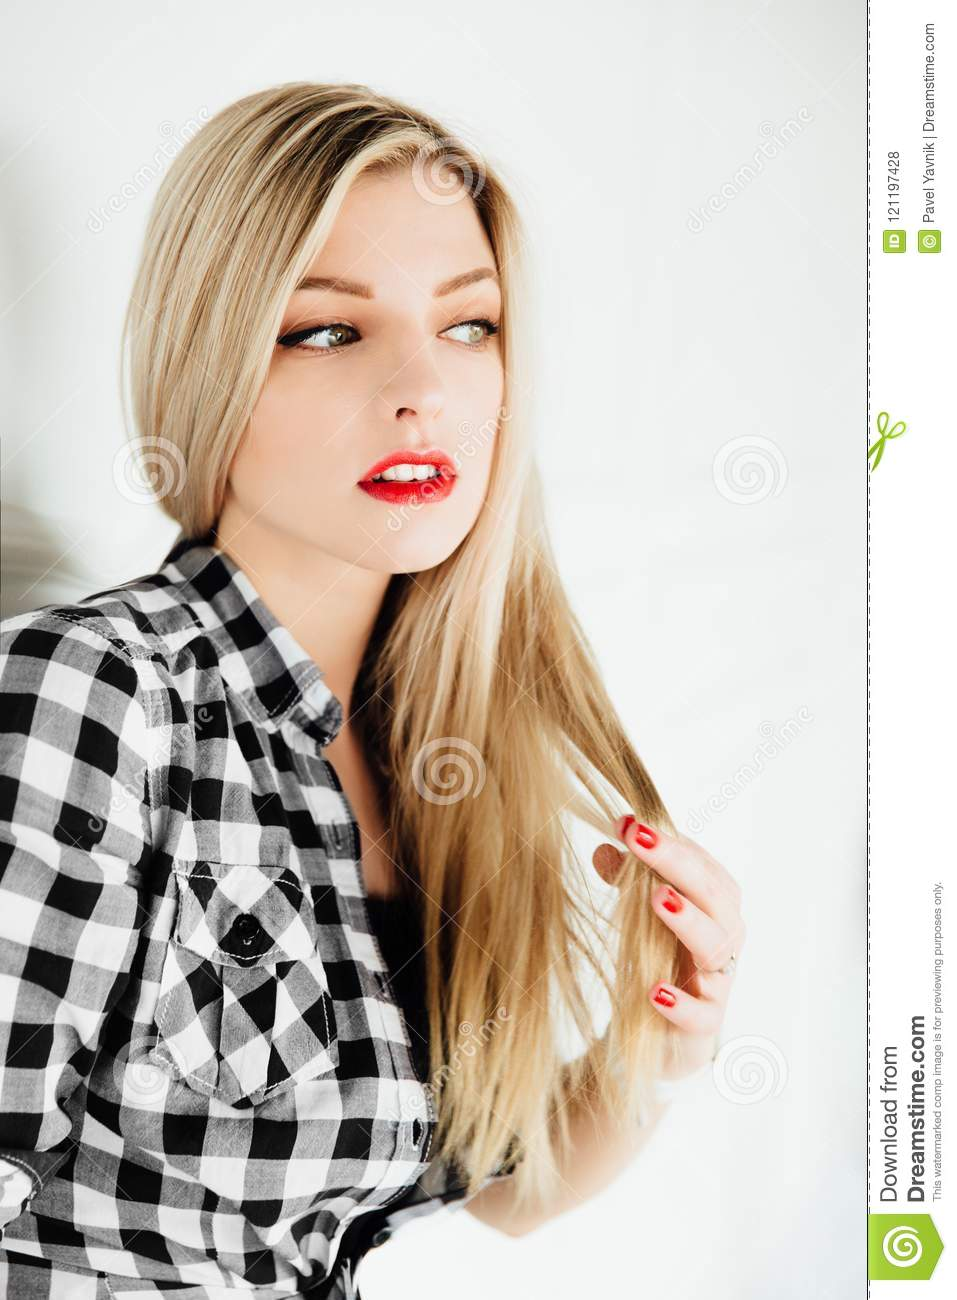 Beautiful young blond woman posing while leaning on interior studio wall.